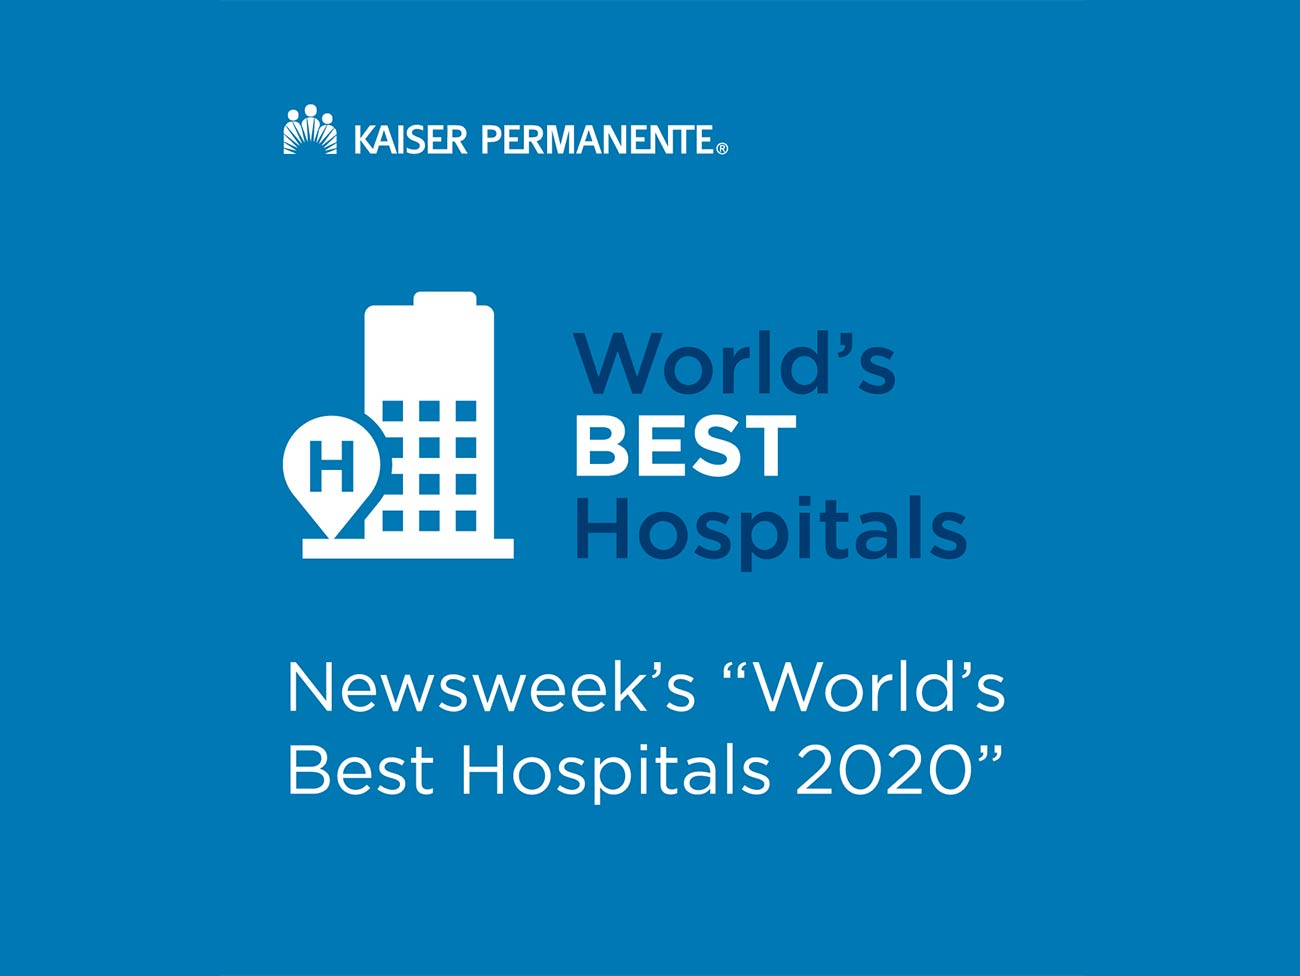 Newsweek's World's Best Hospitals 2020